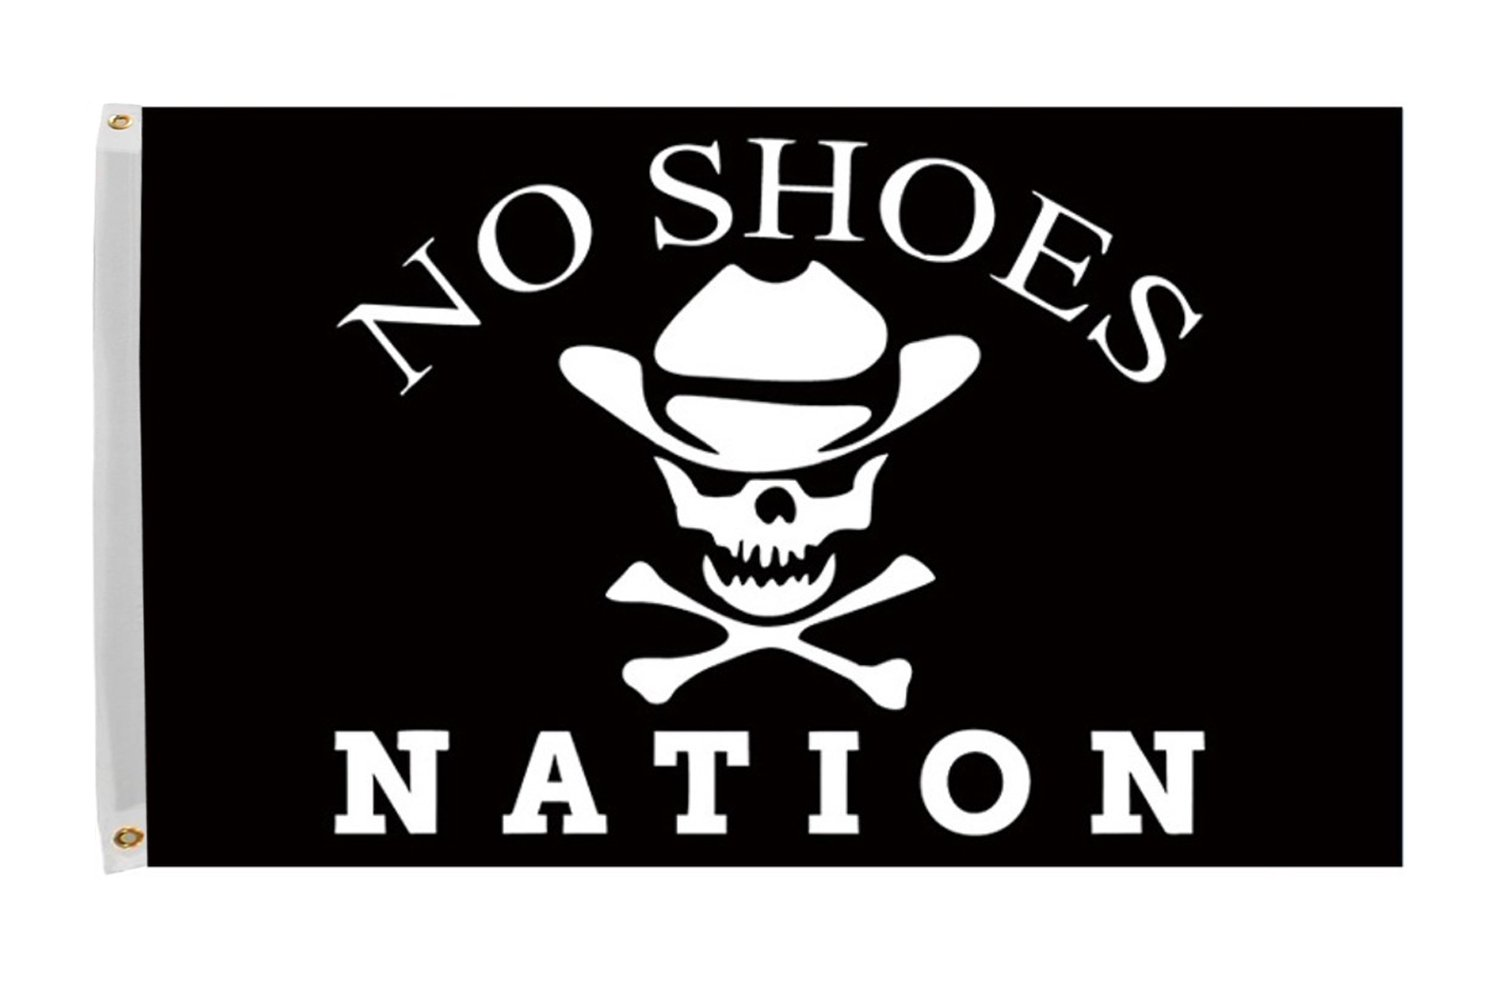 Time Roaming 3x5 Ft No Shoes Nation Flag Pirate Skull with Cowboy Hat Fan Club Polyester Flag with Brass Grommets